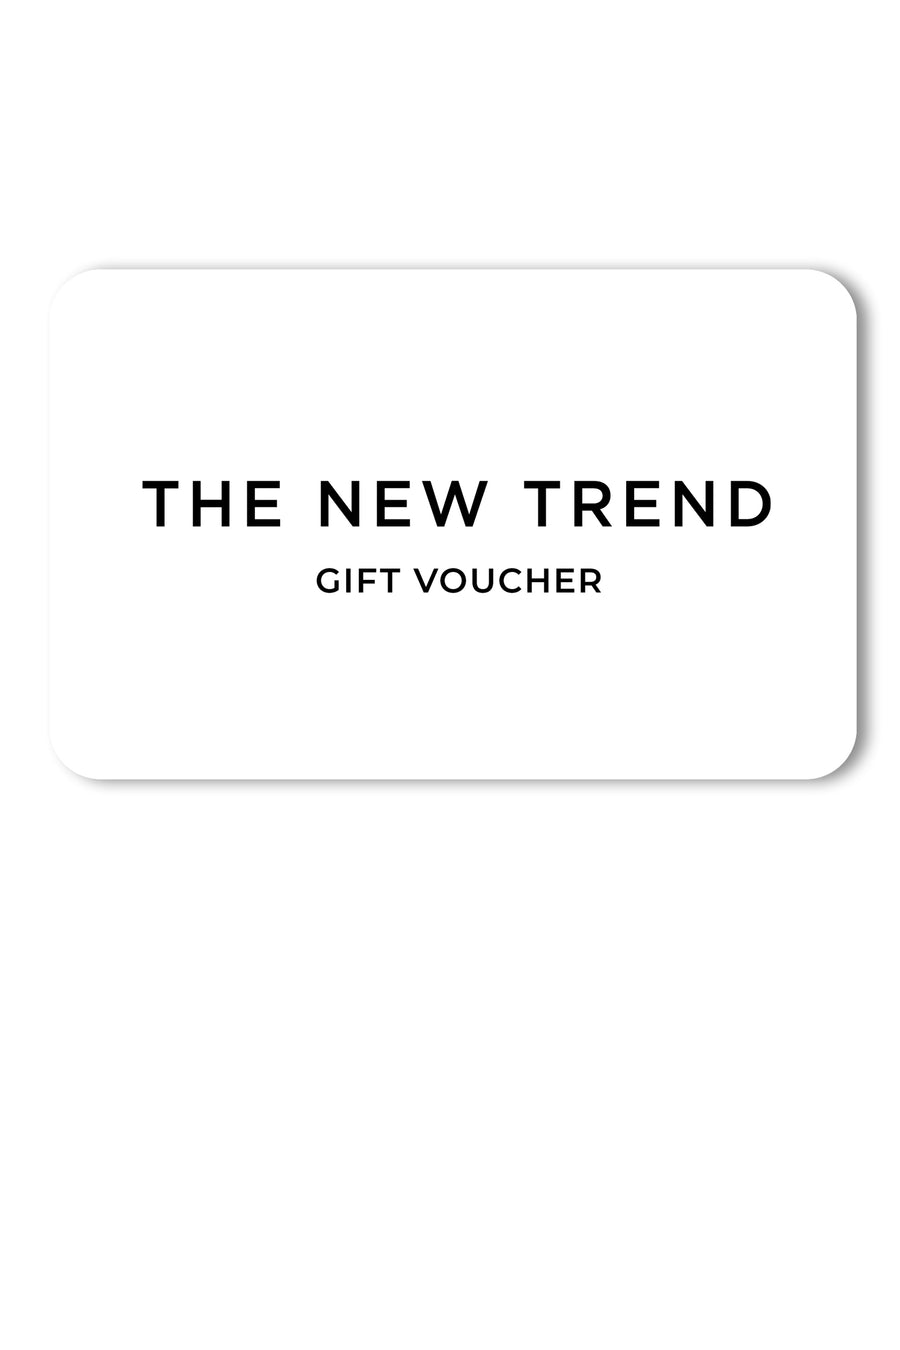 The New Trend Gift Card Virtual Gift Voucher